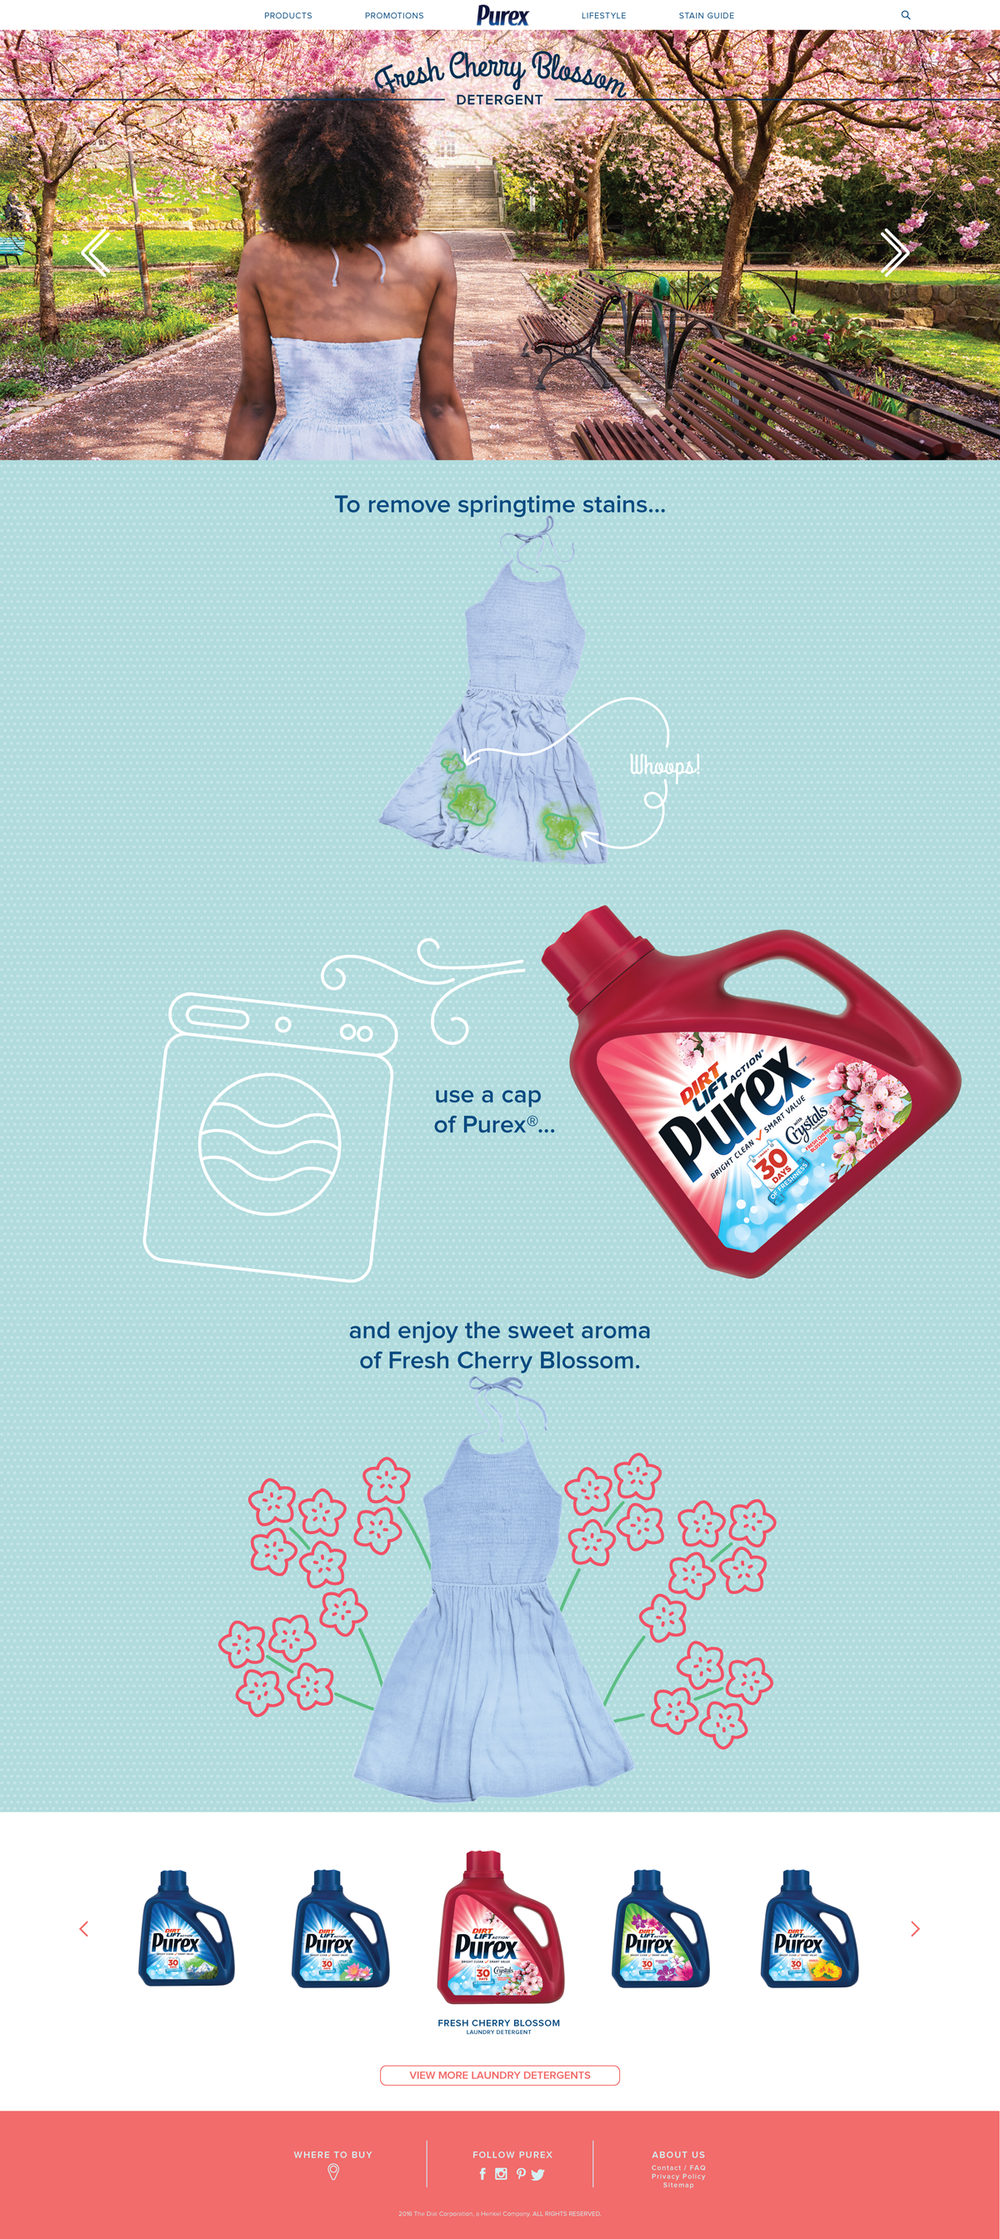 PUREX-website-redesign-v16-June_Page_07-small.png